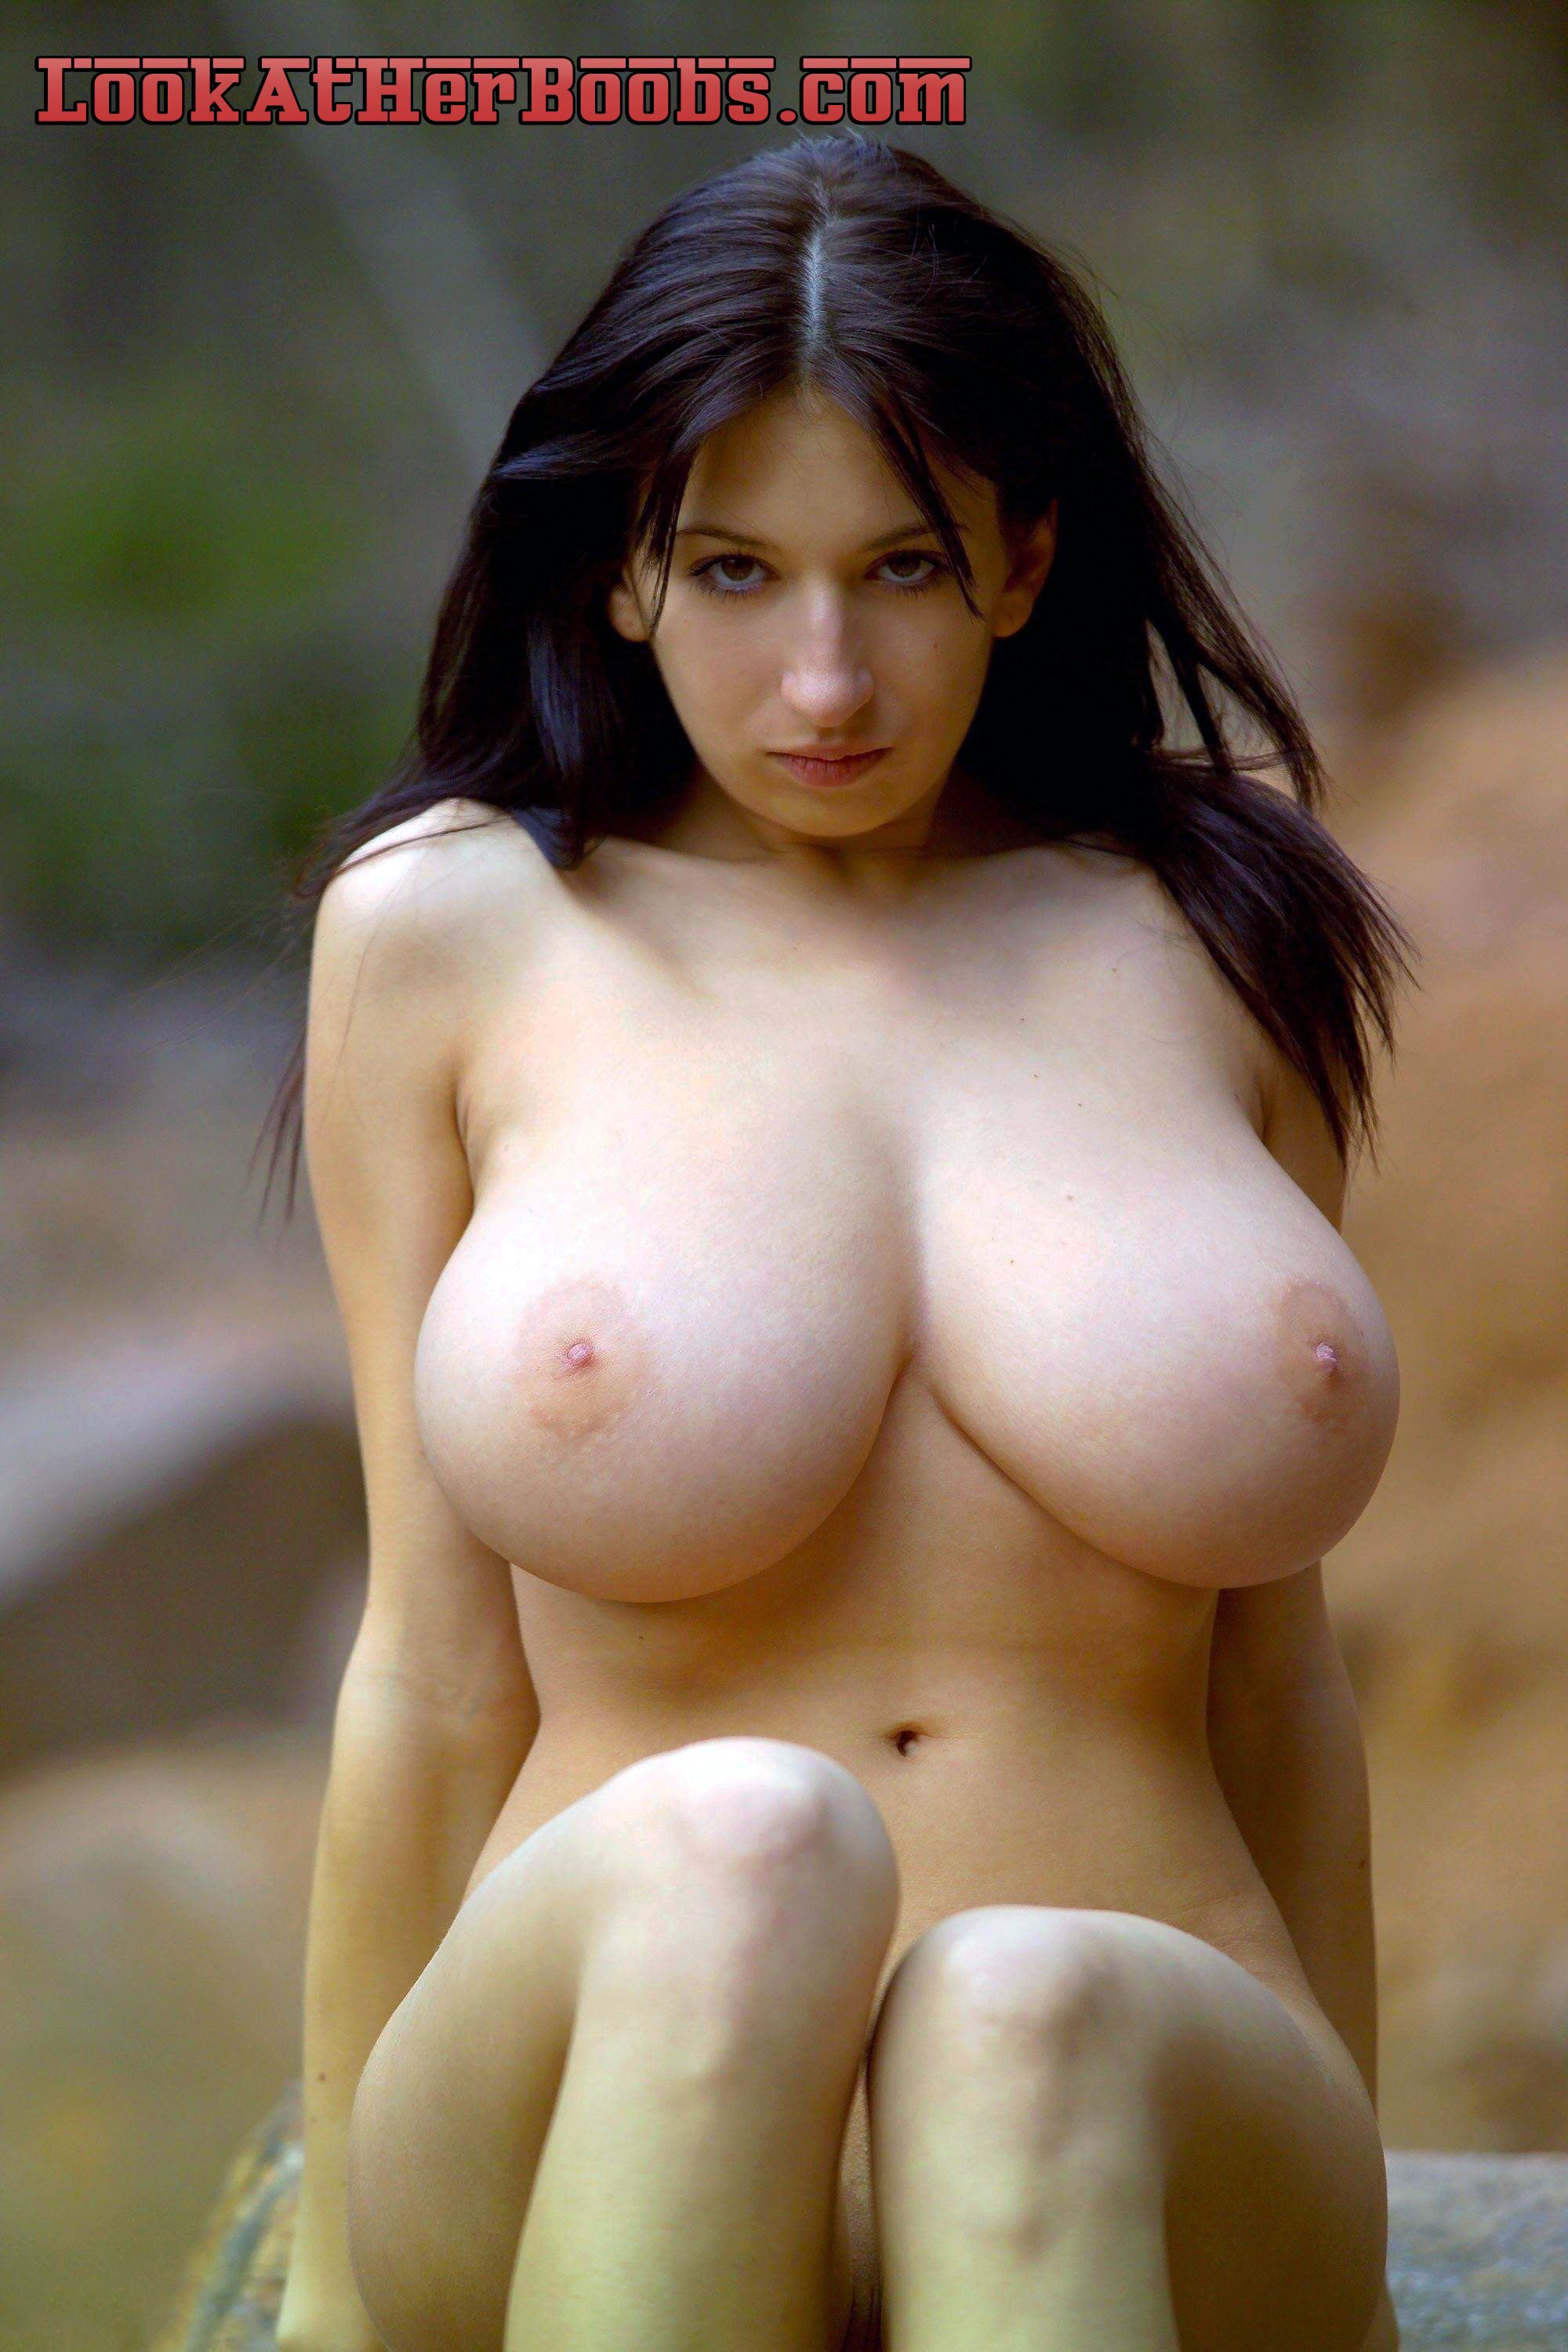 naked nude women with small tits